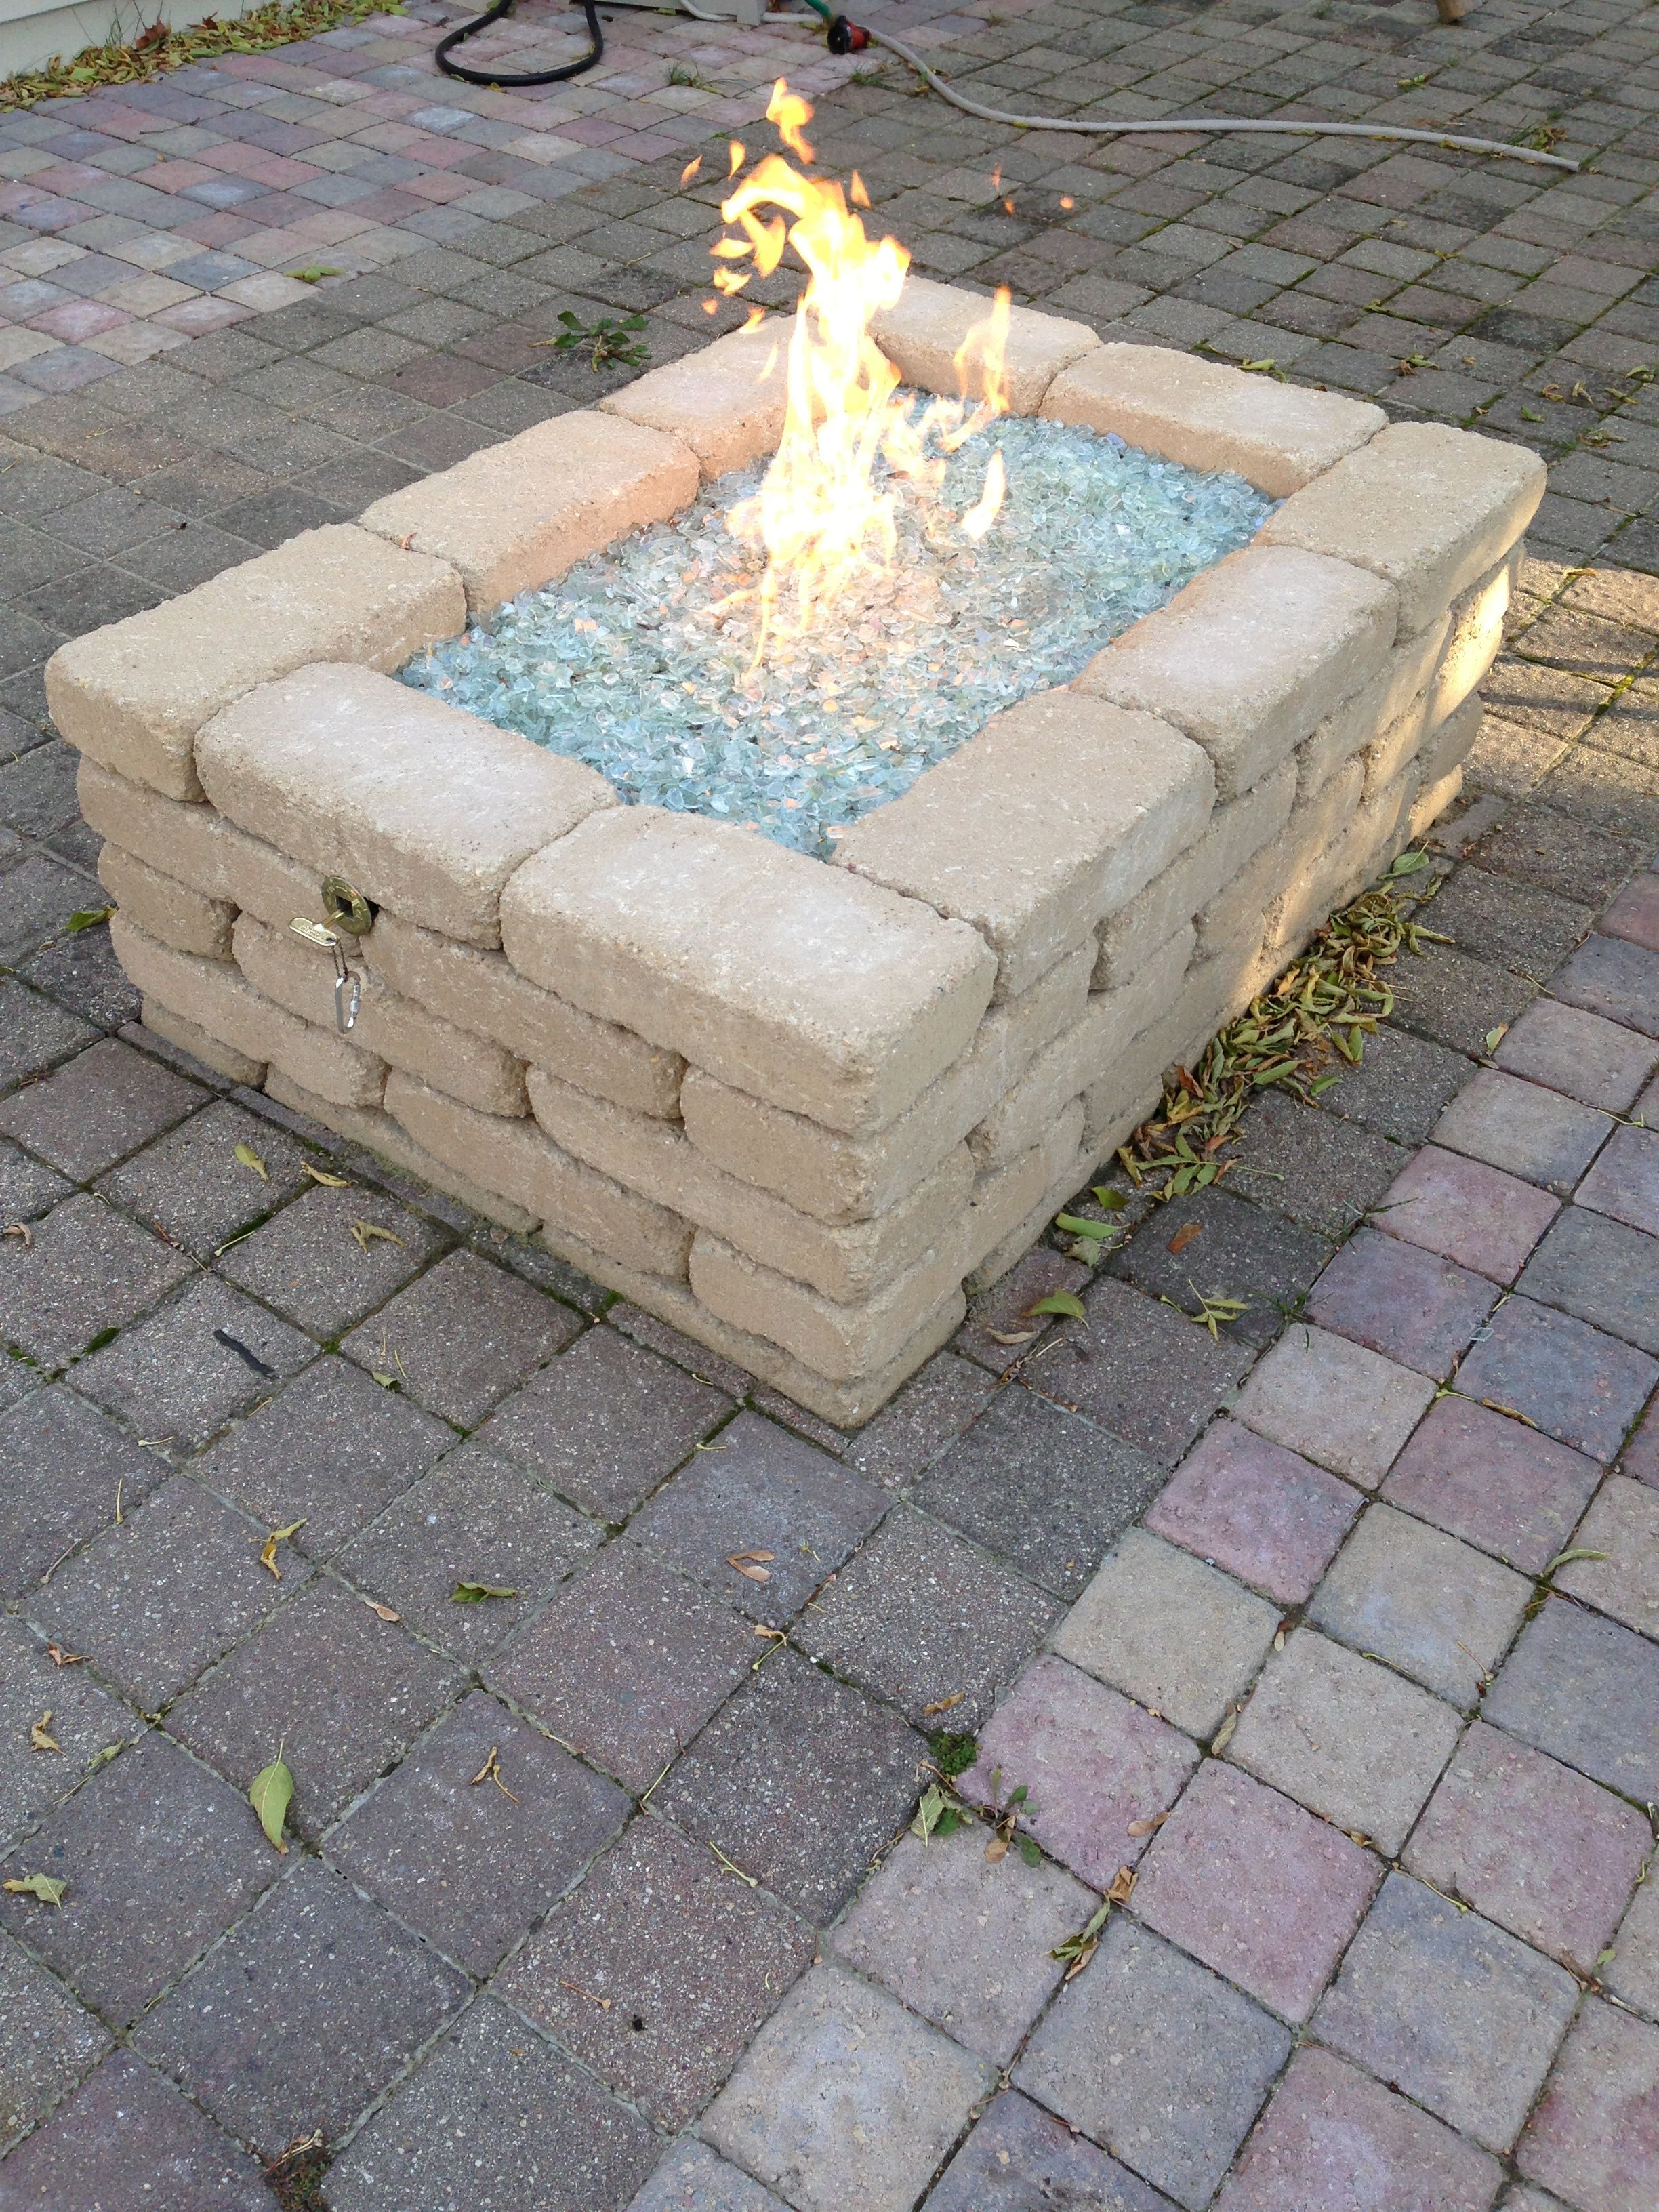 Natural Gas Fire Pit Block Purchased From Menards Glass Purchased Online At Woodlanddirect Com Burner Purc Natural Gas Fire Pit Outdoor Fire Pit Gas Firepit